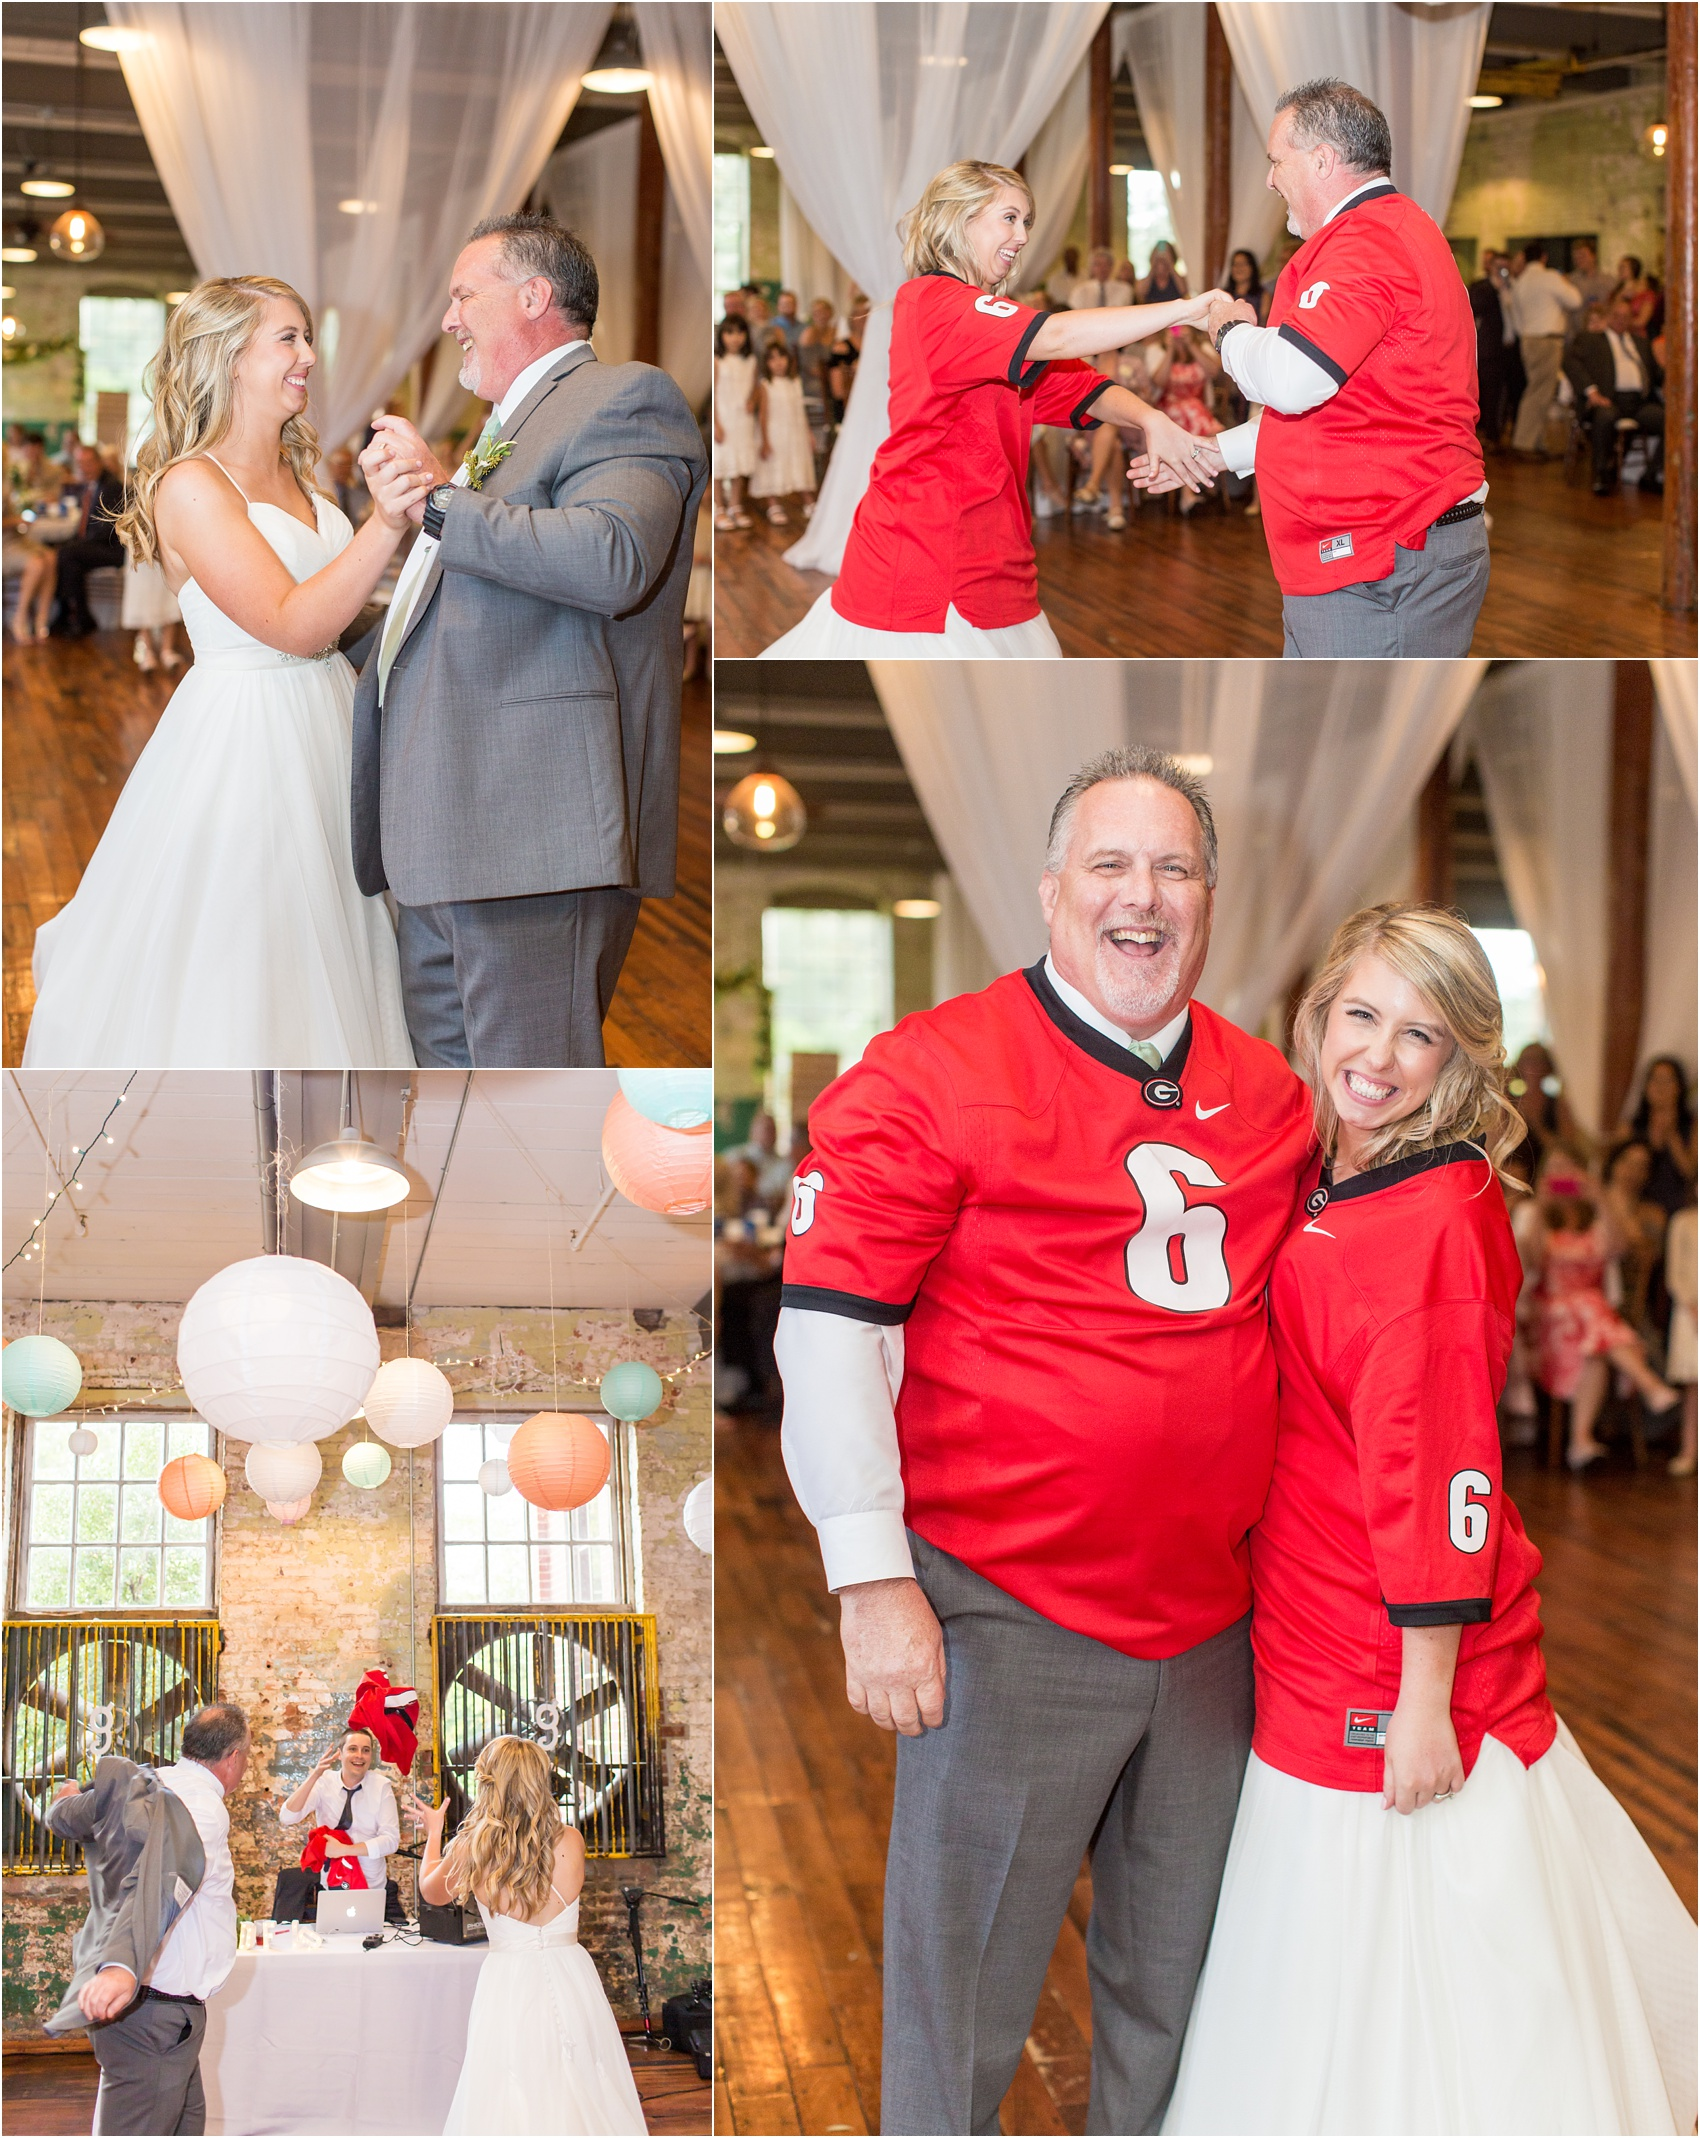 Savannah Eve Photography- Gunter Wedding- Blog-70.jpg